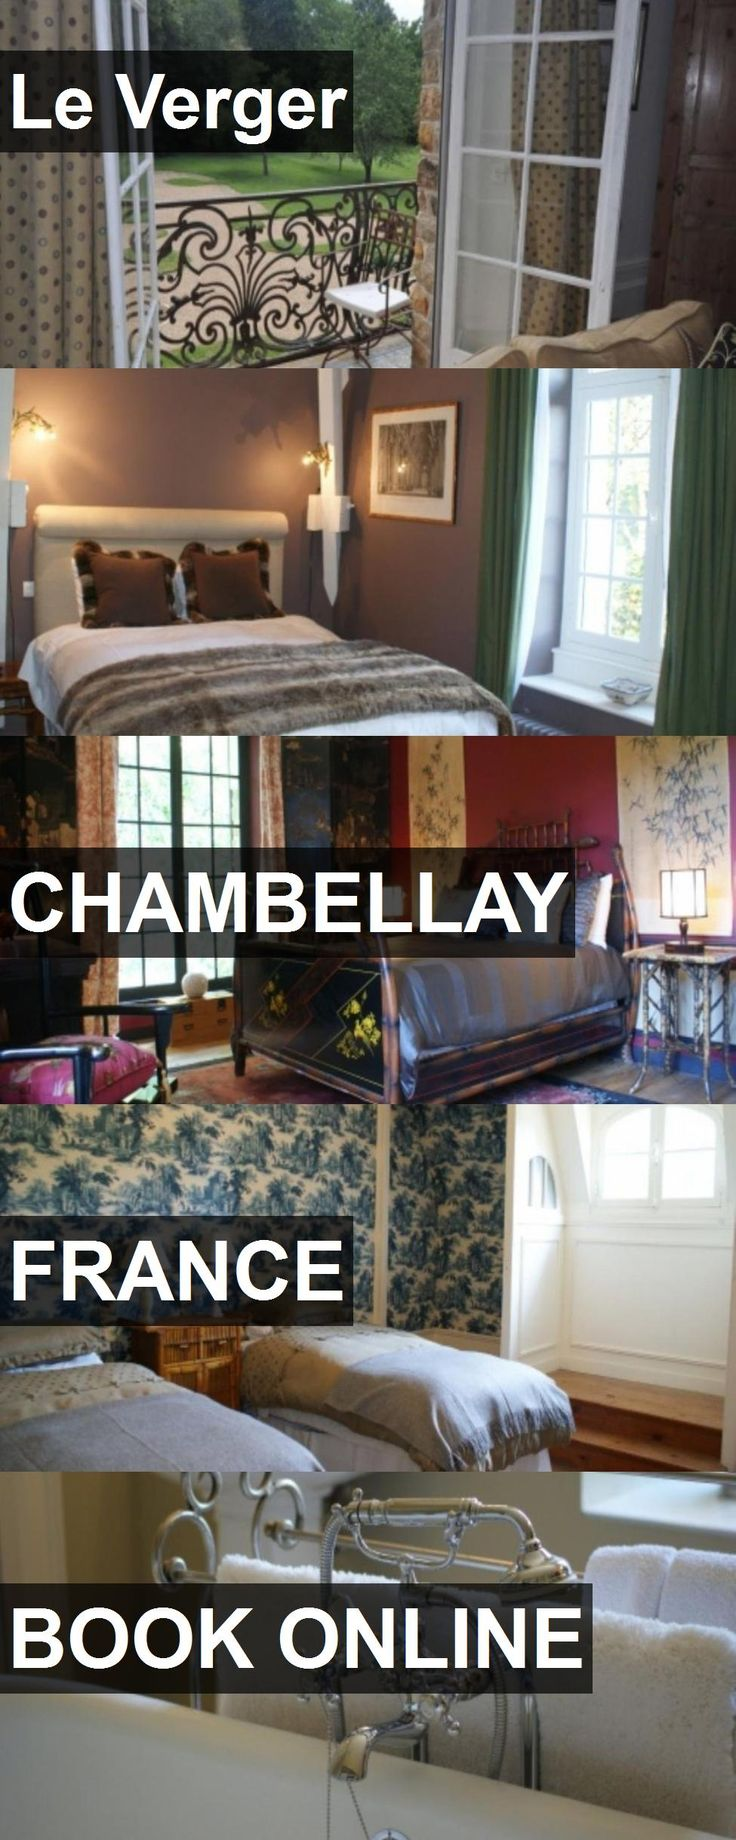 Hotel Le Verger in Chambellay, France. For more information, photos, reviews and best prices please follow the link. #France #Chambellay #travel #vacation #hotel